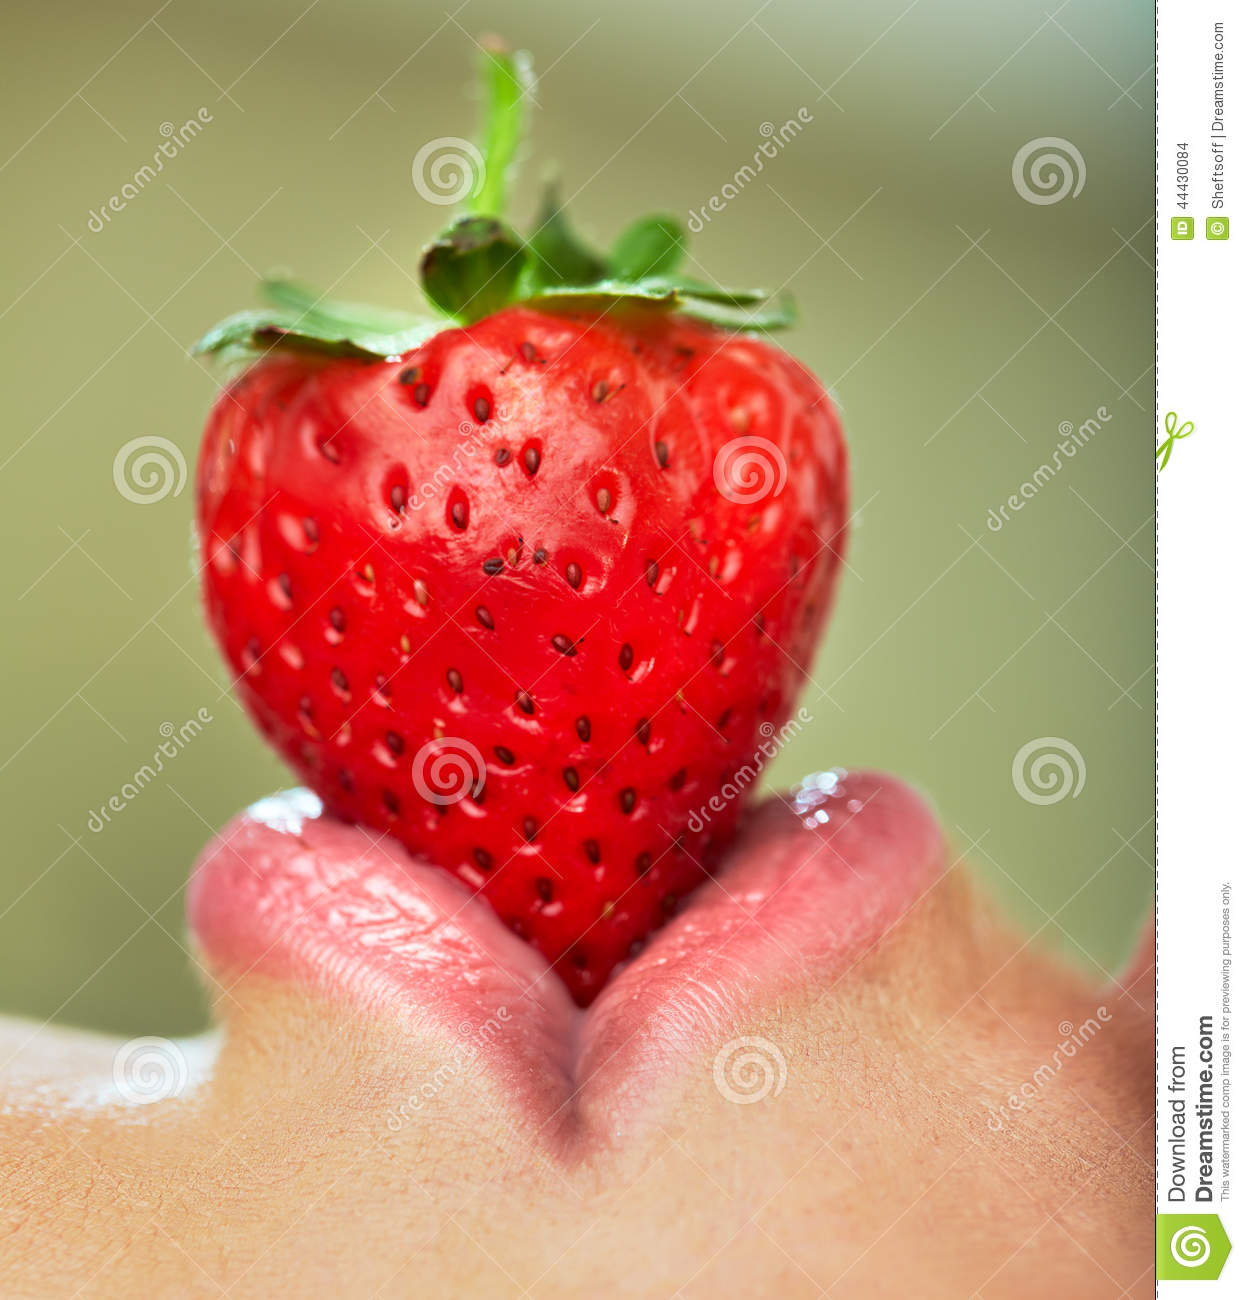 Lips with strawberry.